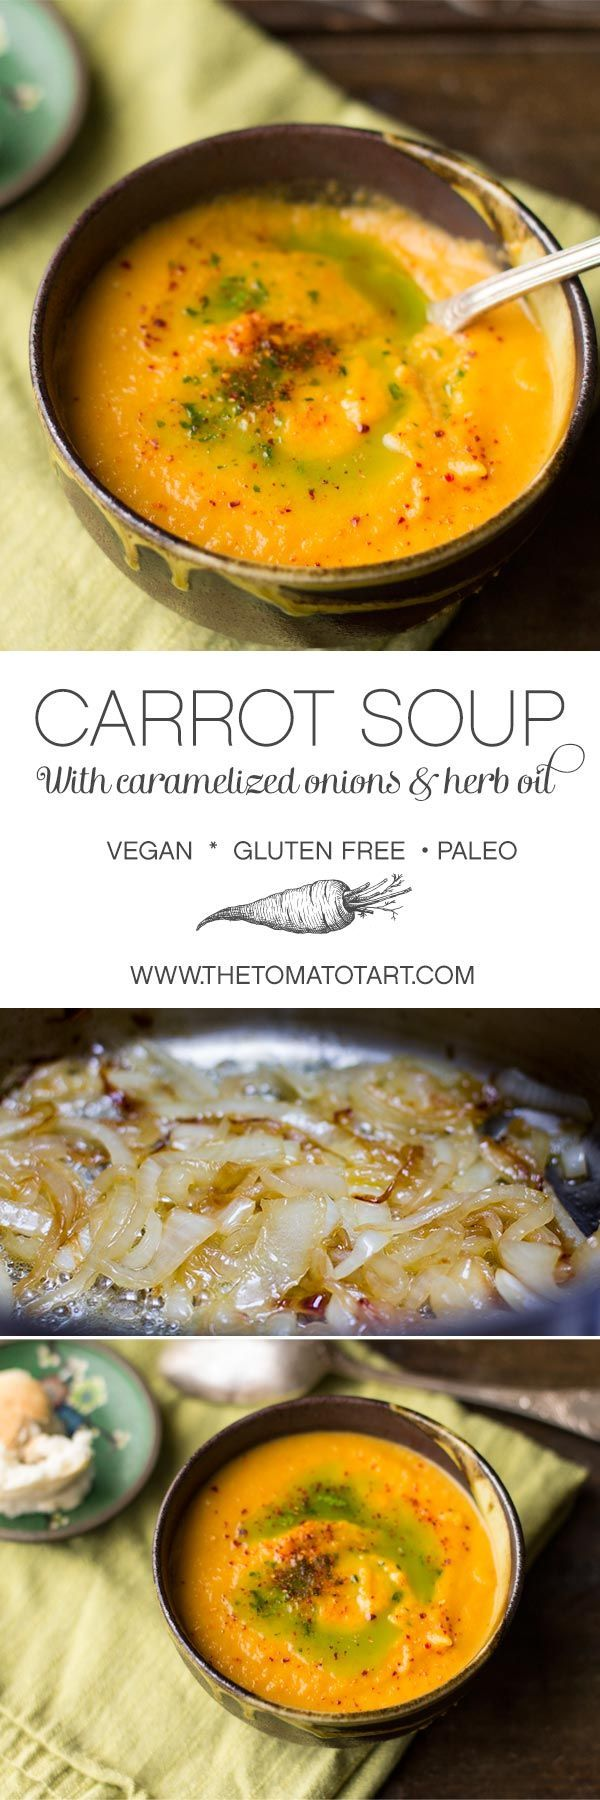 Caramelized Onion & Carrot Soup Recipe #vegan #glutenfree #paleo